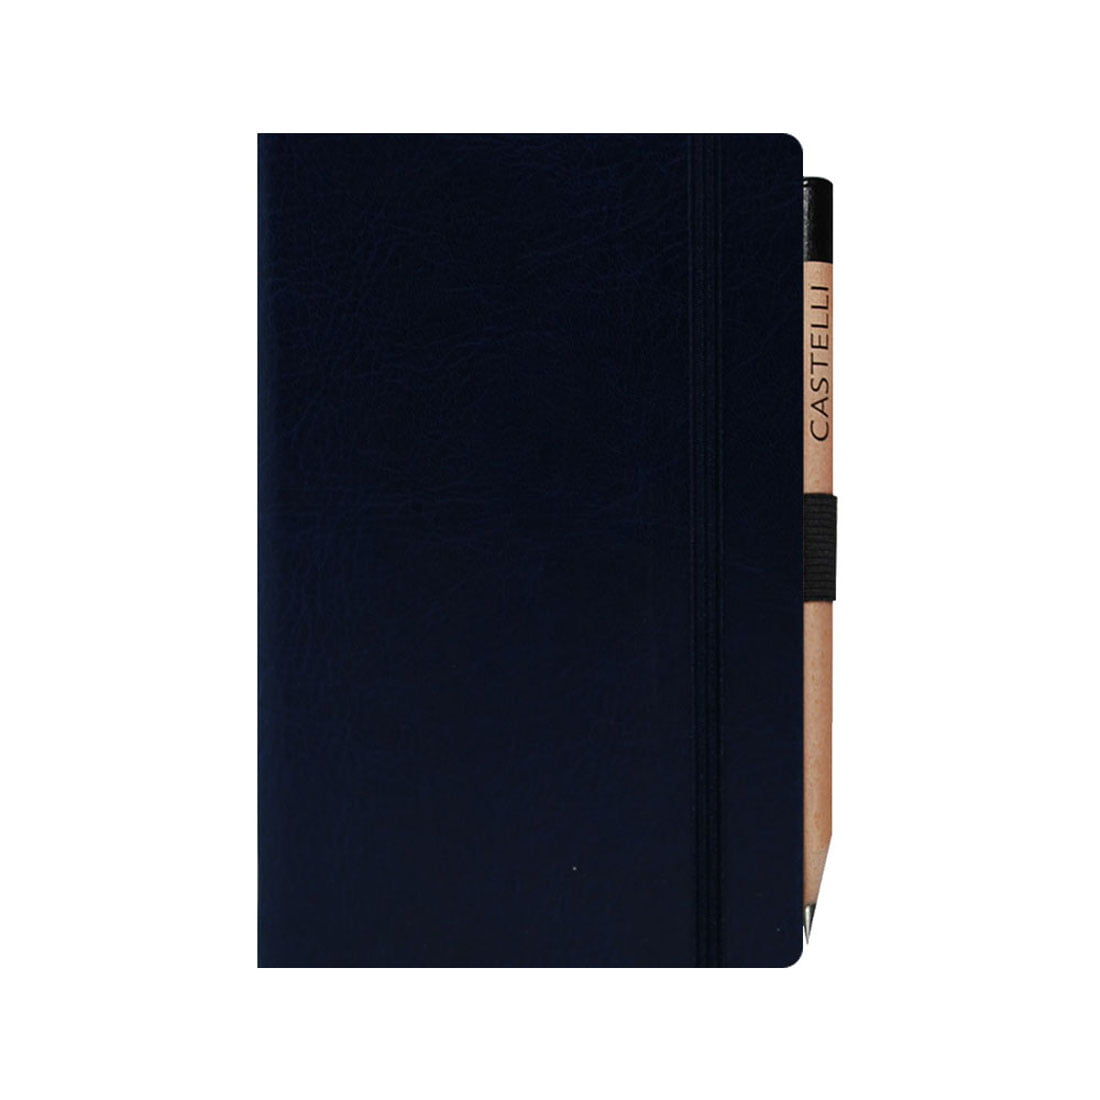 Sherwood pocket notebook with elasticated band, round corner and ivory pages